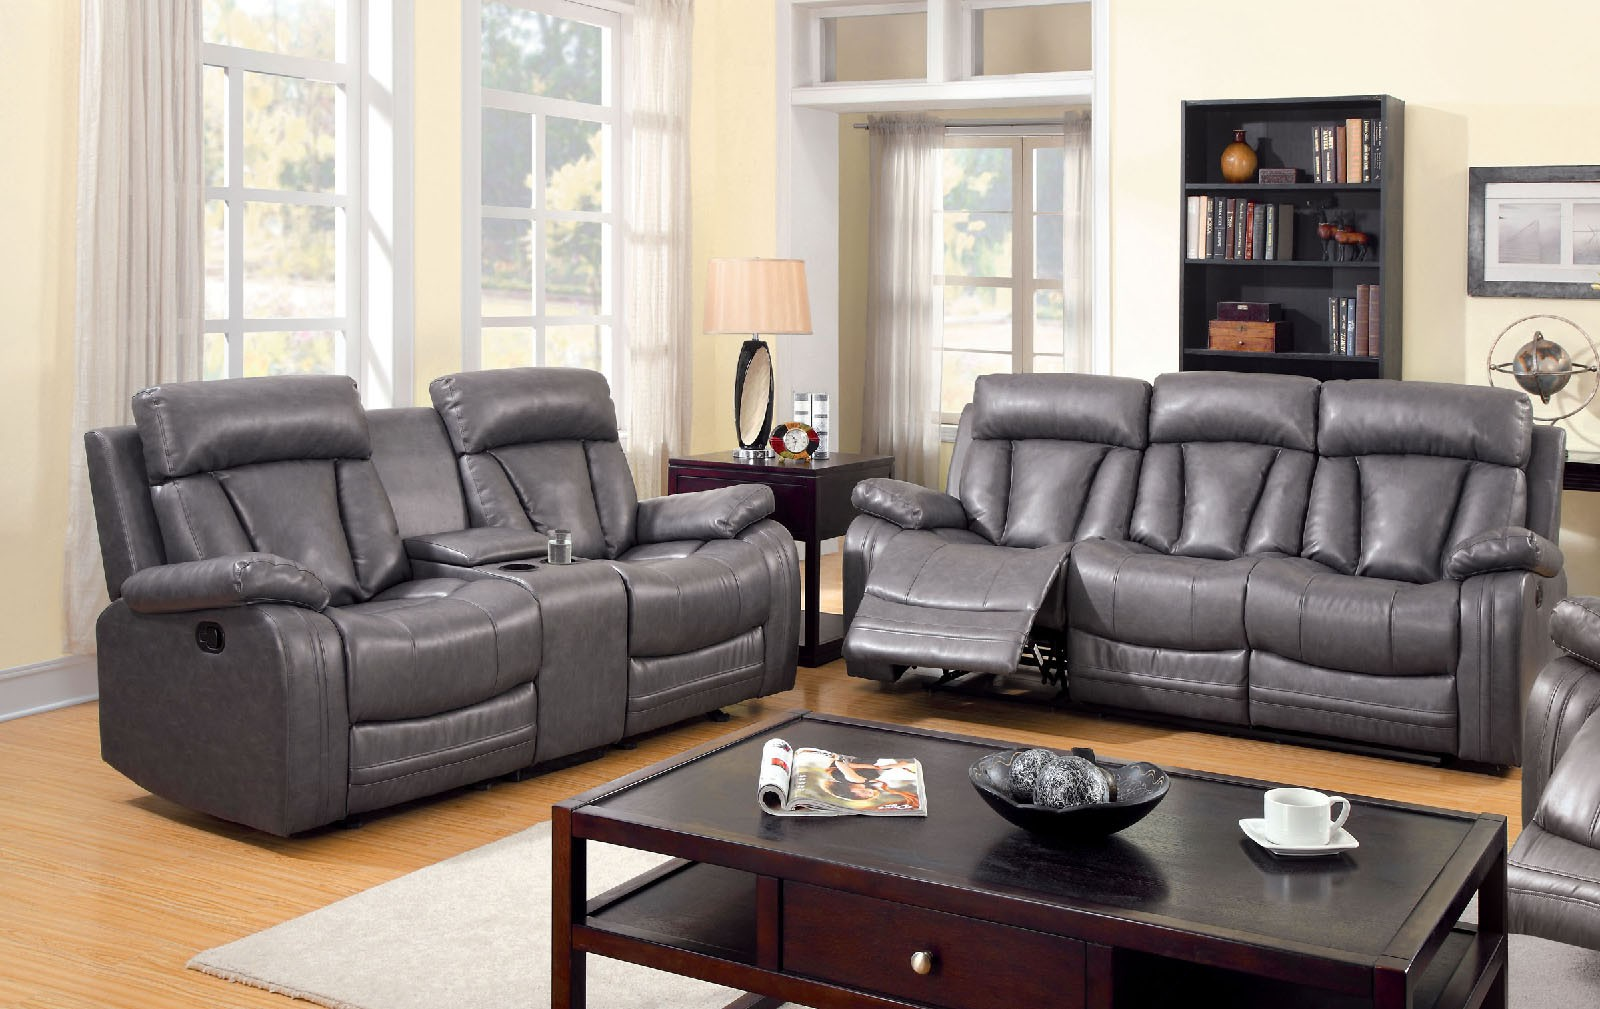 3 Pc Motion Sofa Set Sofa Loveseat Recliner Gray Bonded Leather Living Room S